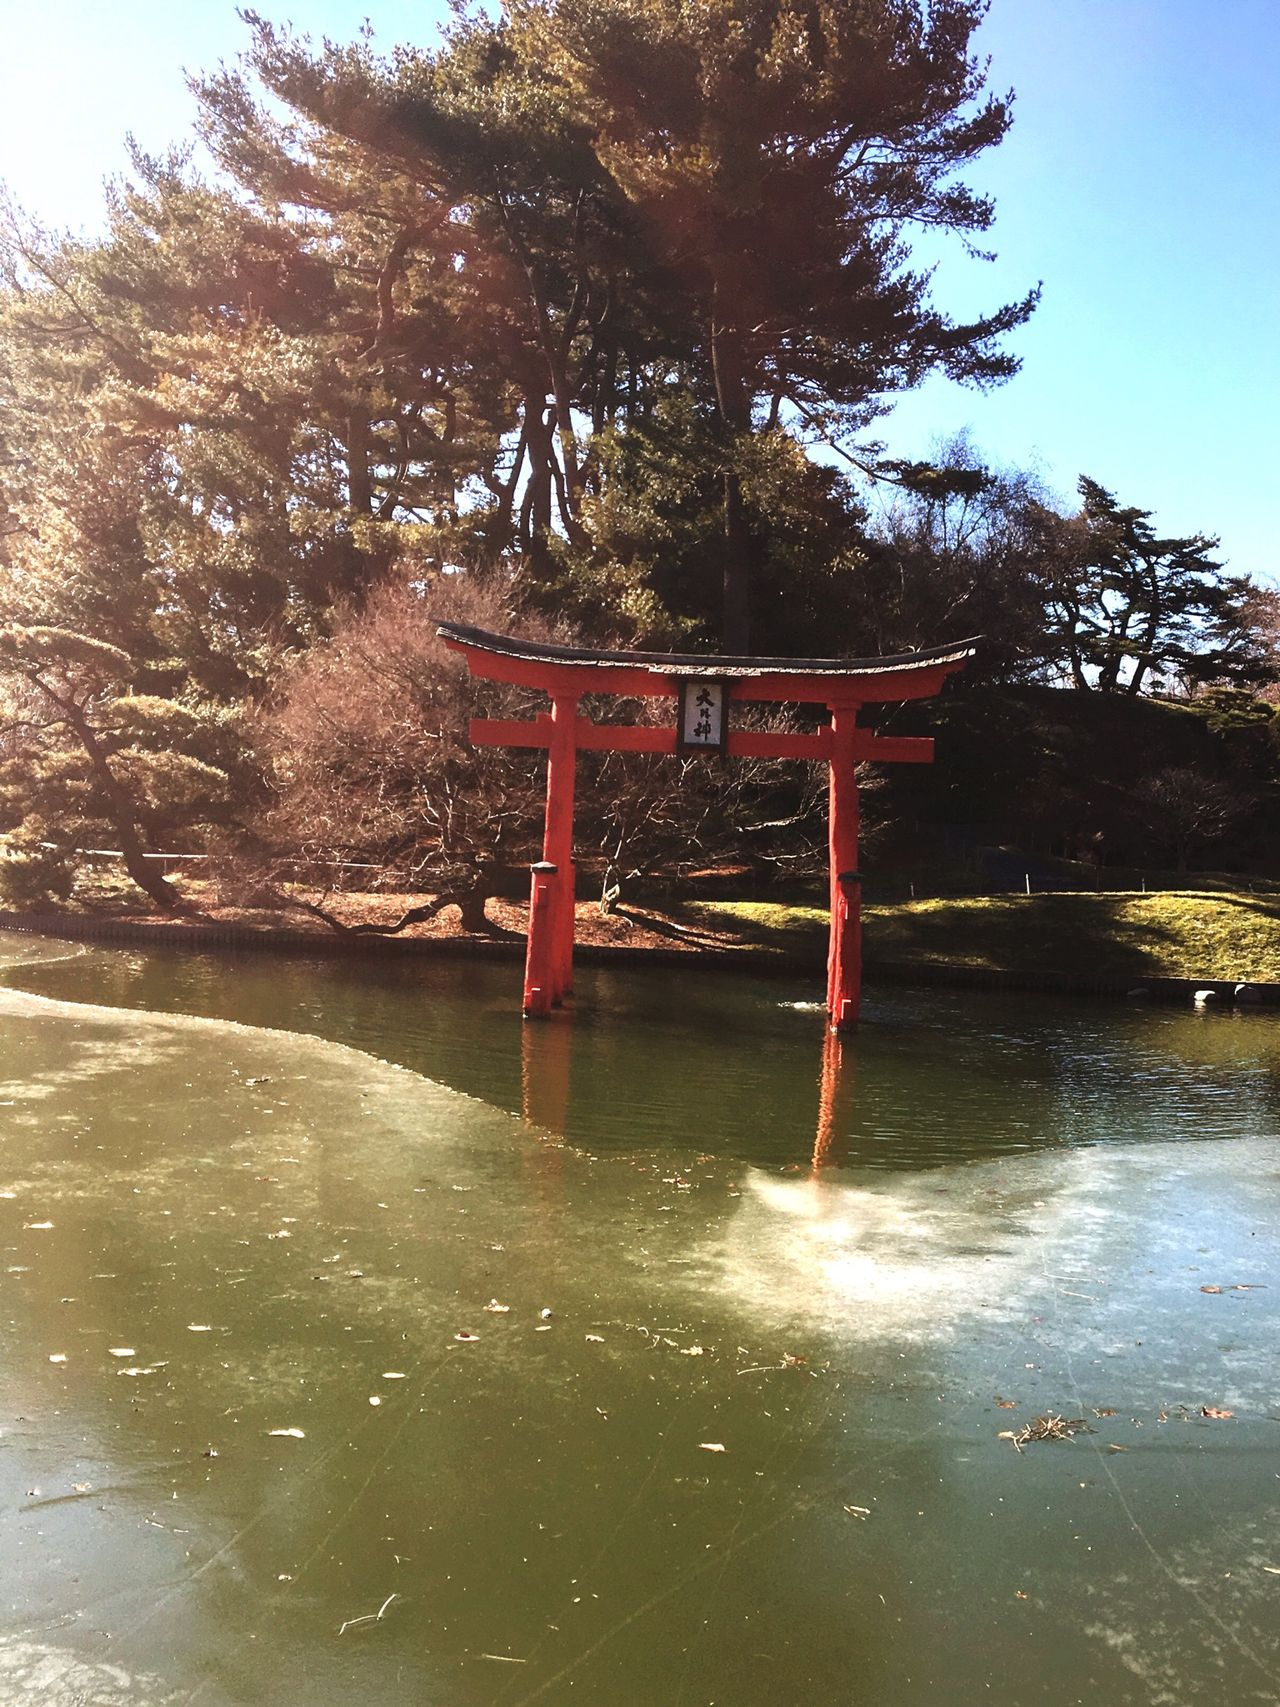 Brooklyn Botanical Gardens Asain Garden The Life Of Pablo City Photography NYC Photography Ice Red Forest Woods Pond Hello World Taking Photos Enjoying Life Another Step Taken In 2016 Winter Outdoors Just Because